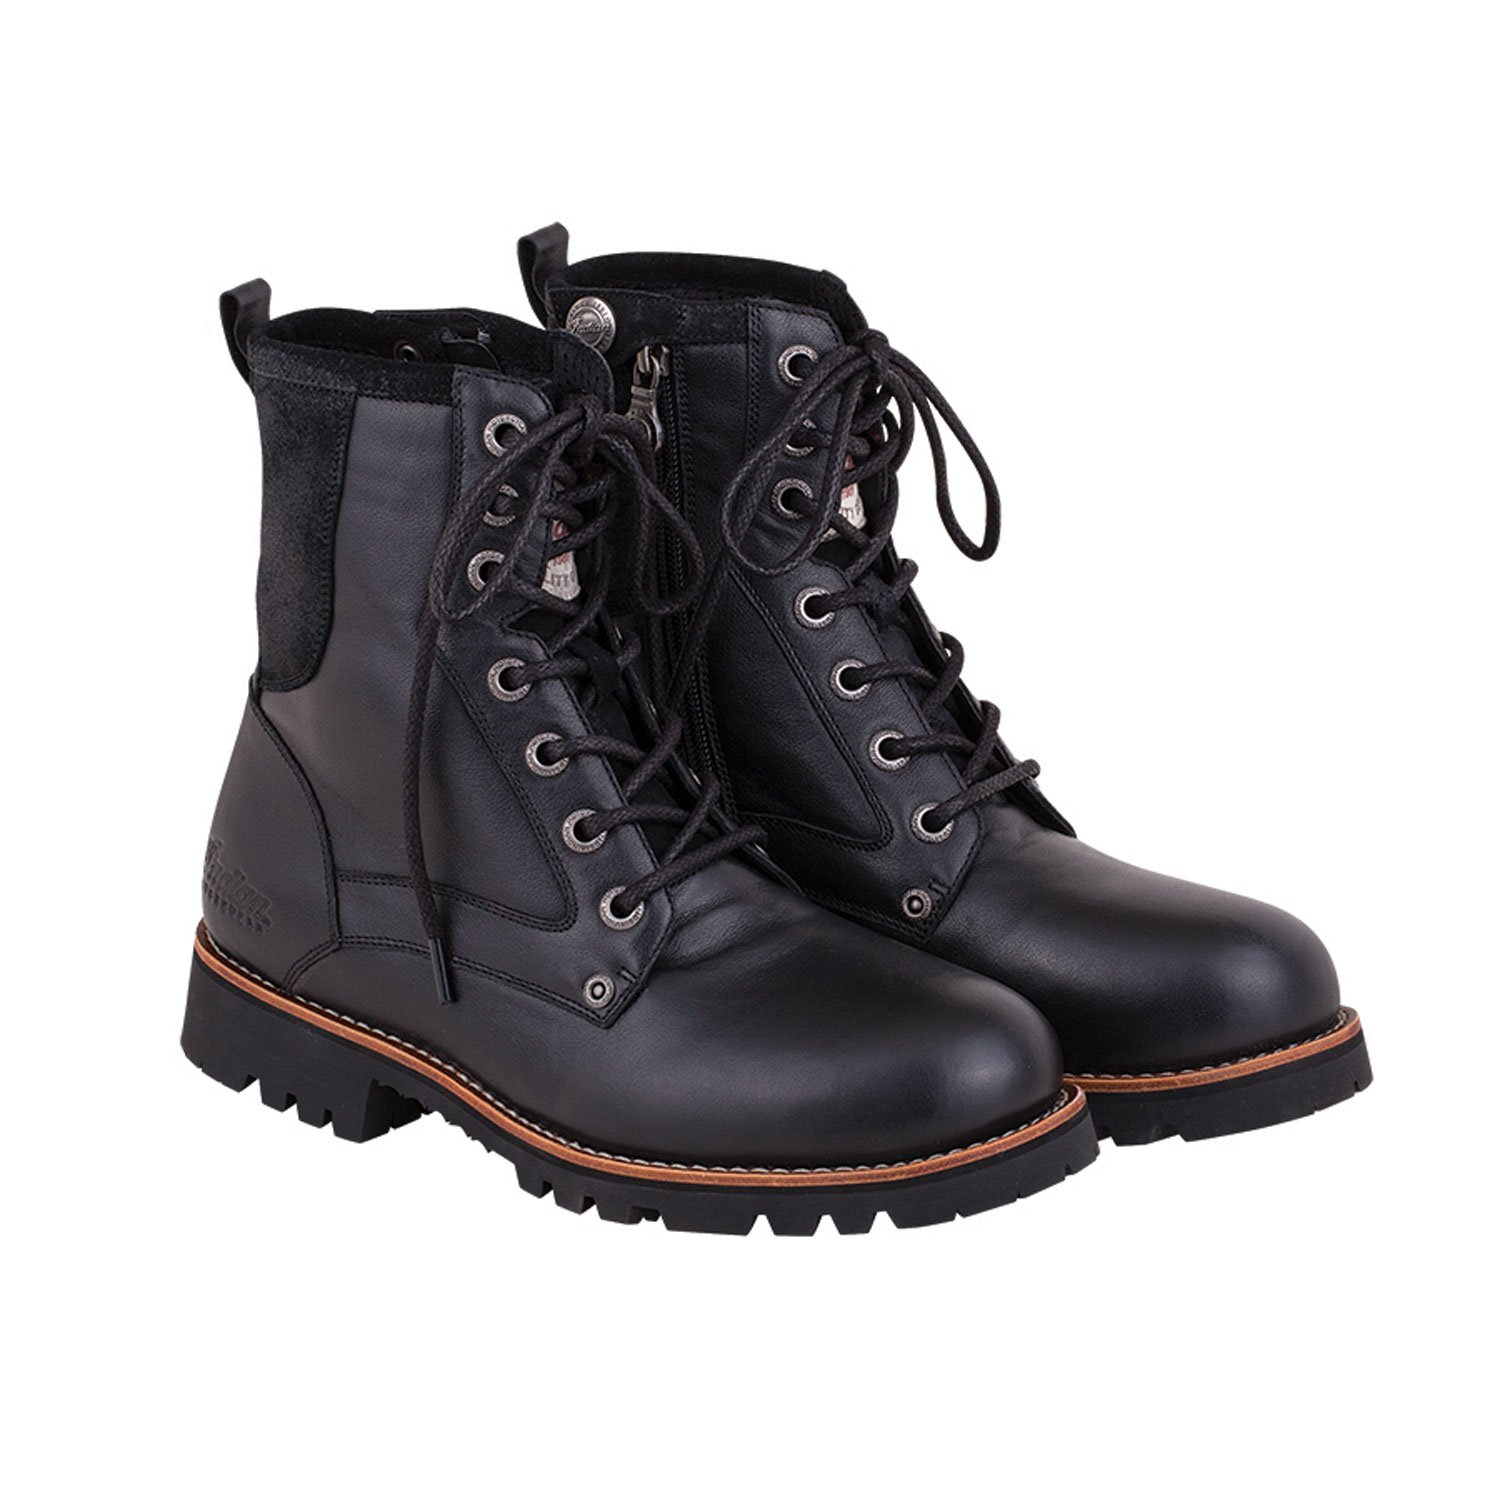 Men's Leather Classic Lace-Up Riding Boot, Black